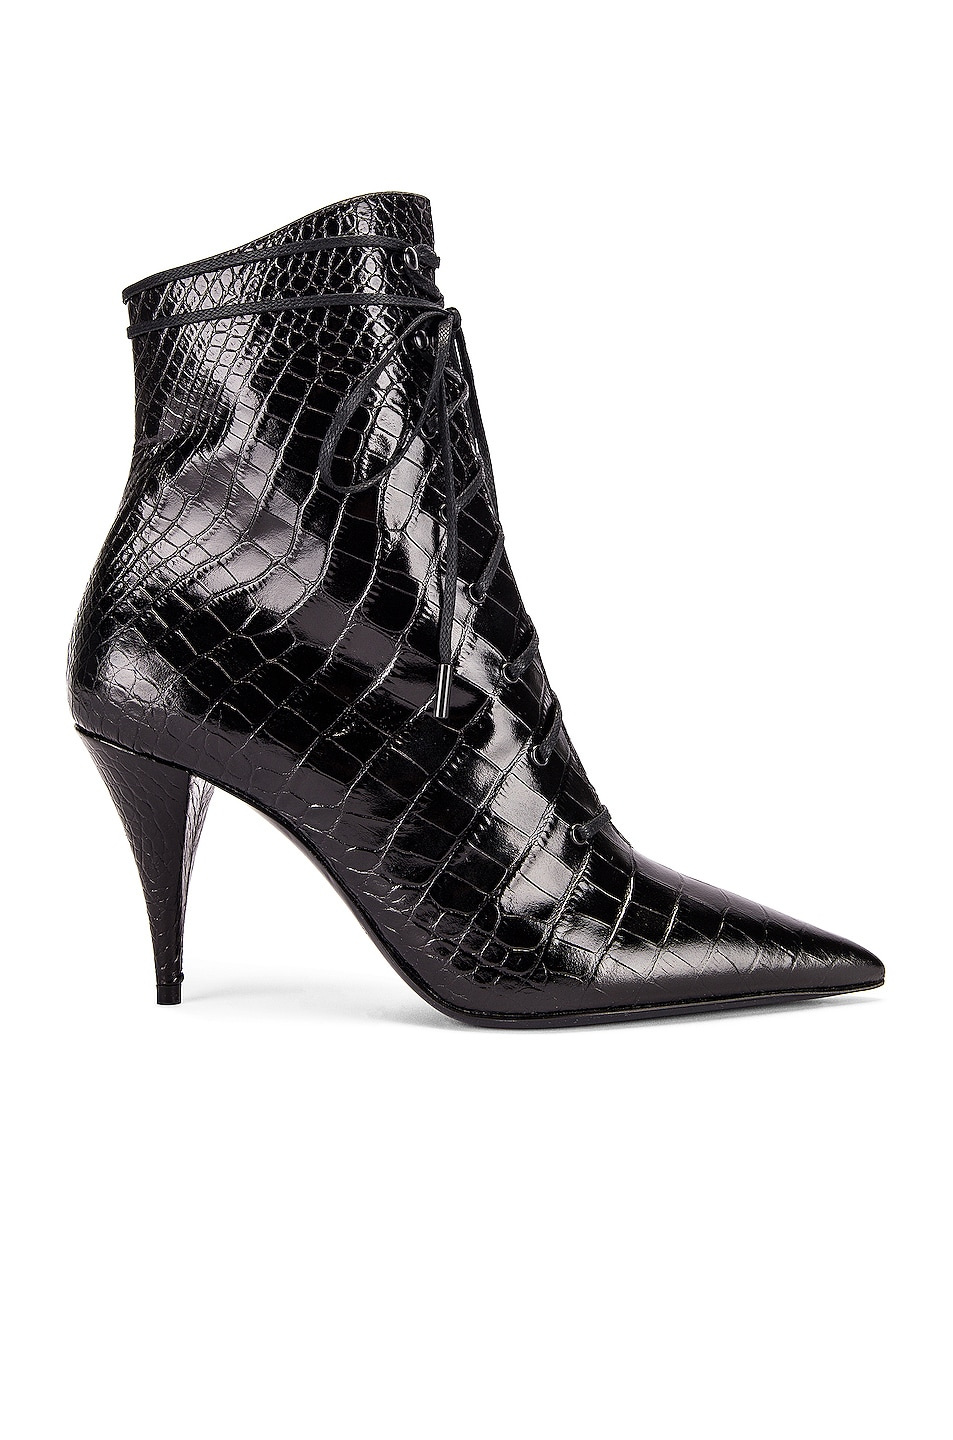 Image 1 of Saint Laurent Kiki Lace Up Booties in Black